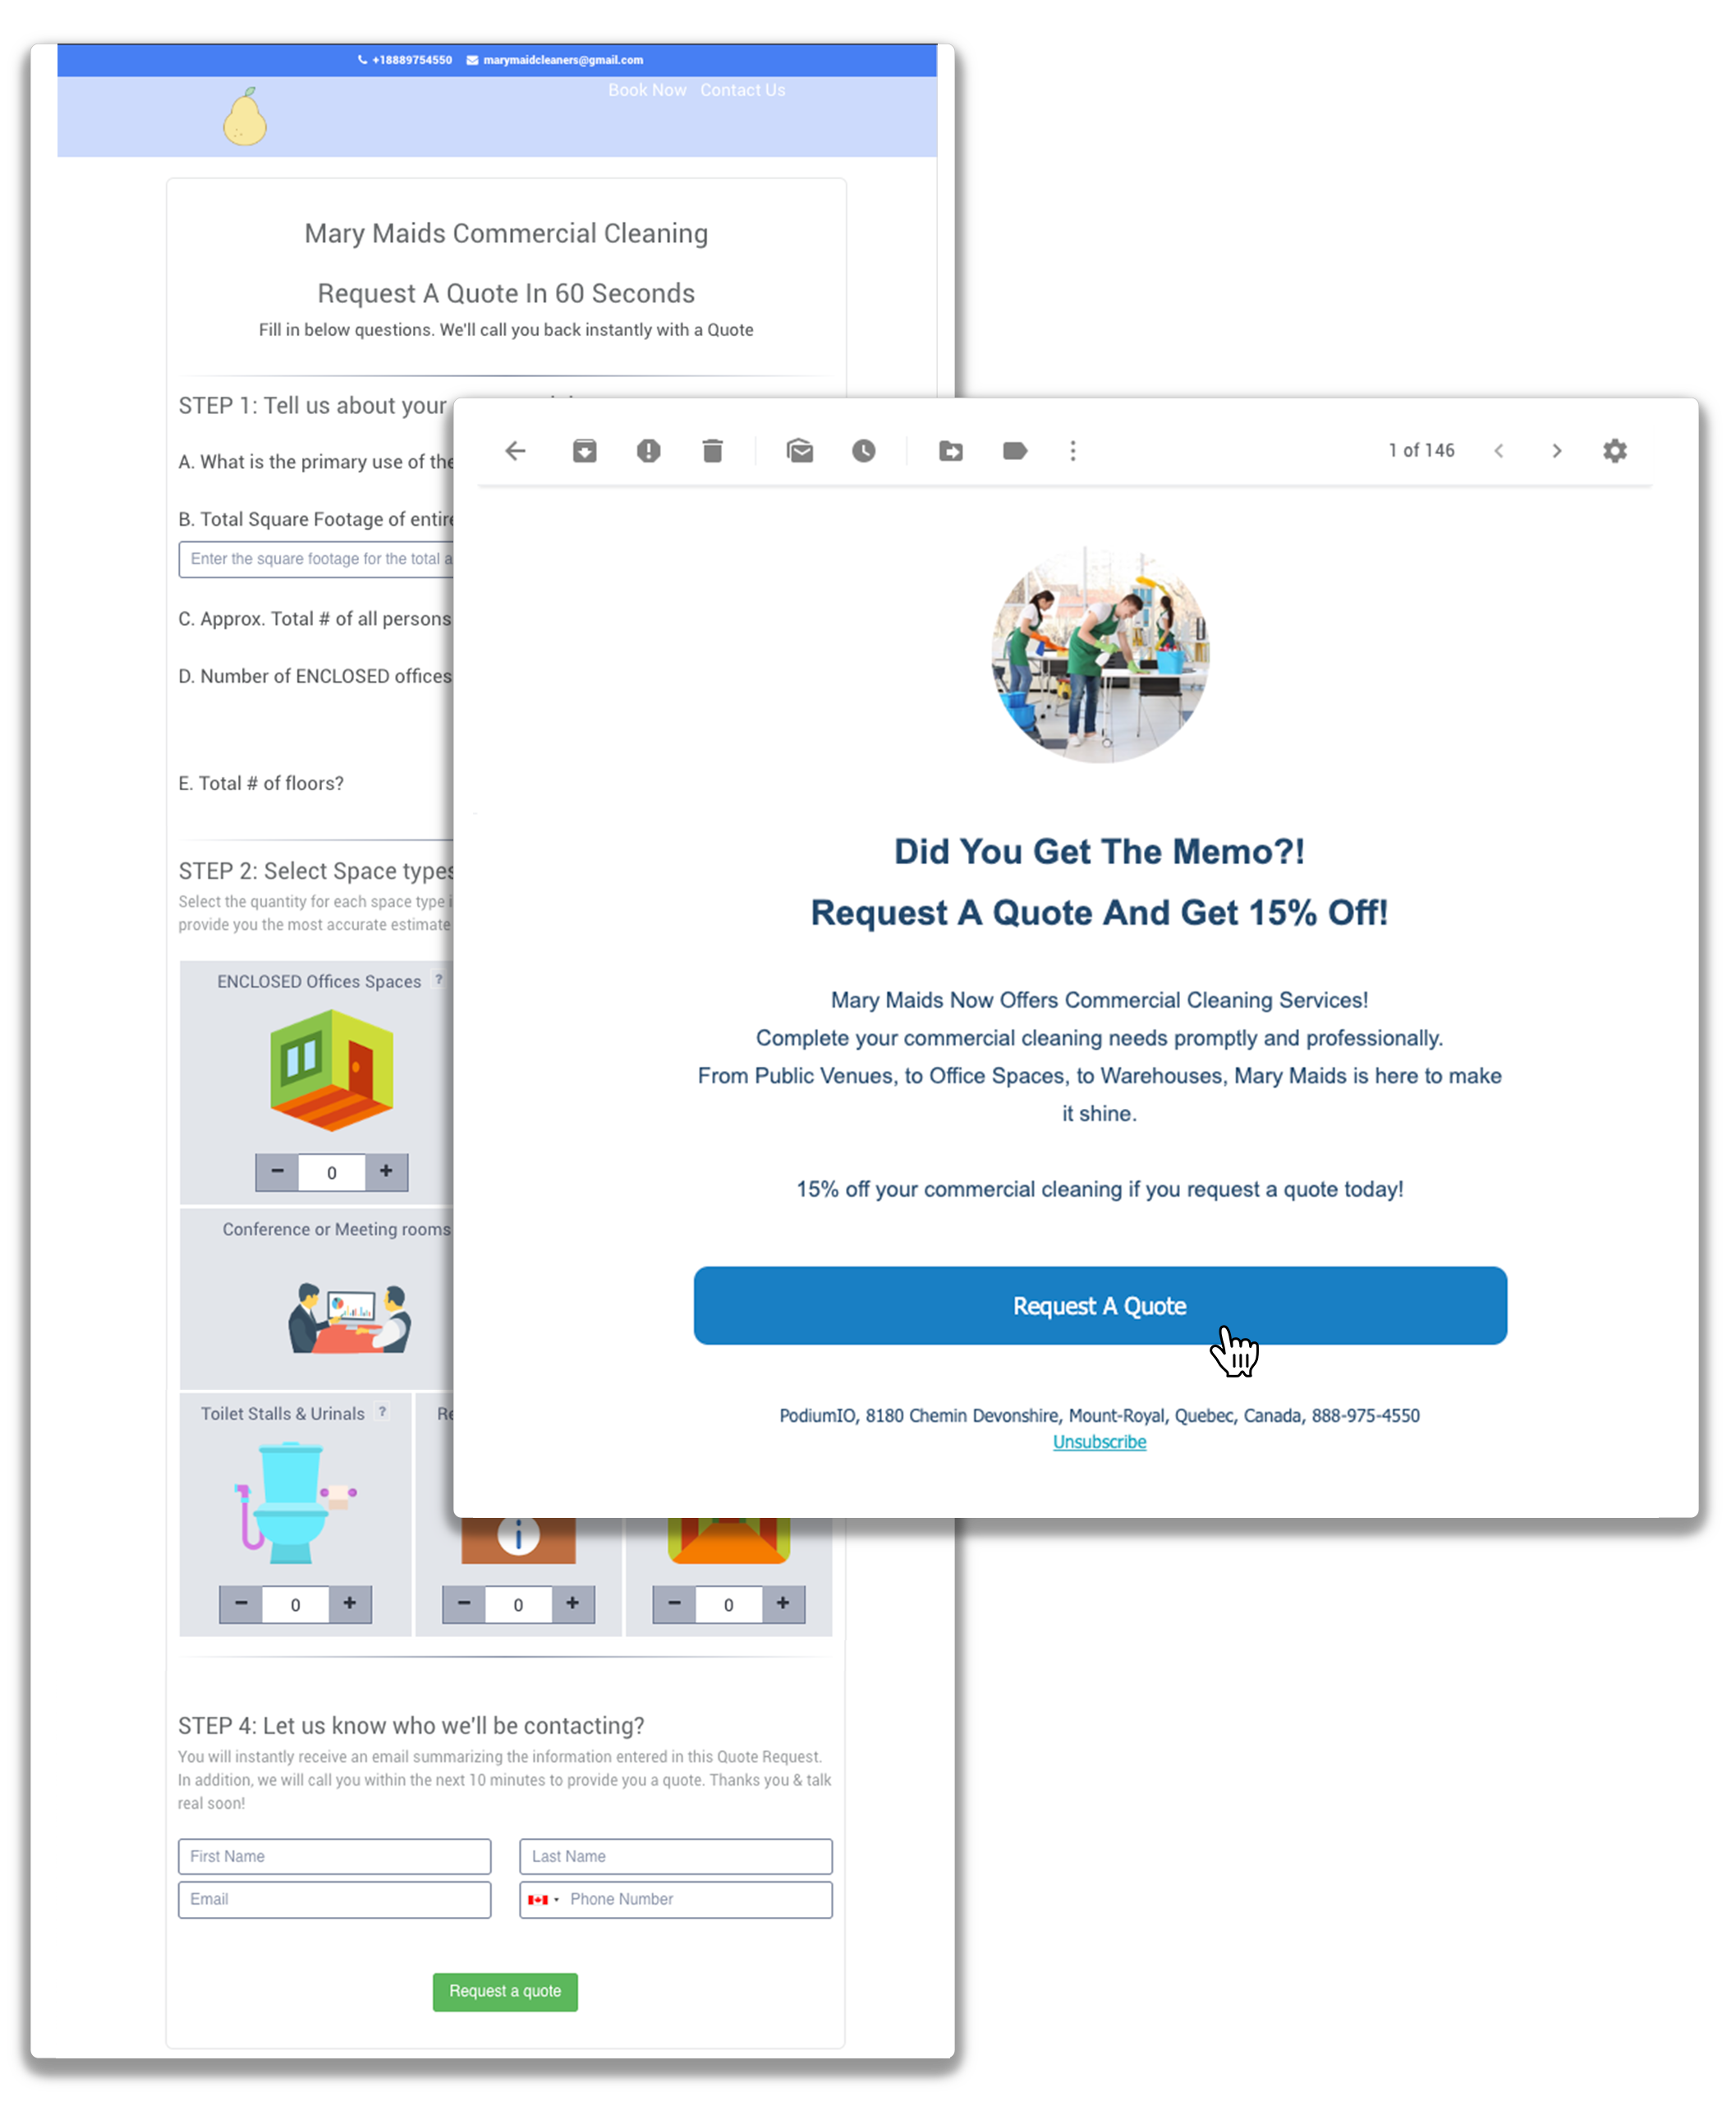 Request a quote - Email Marketing